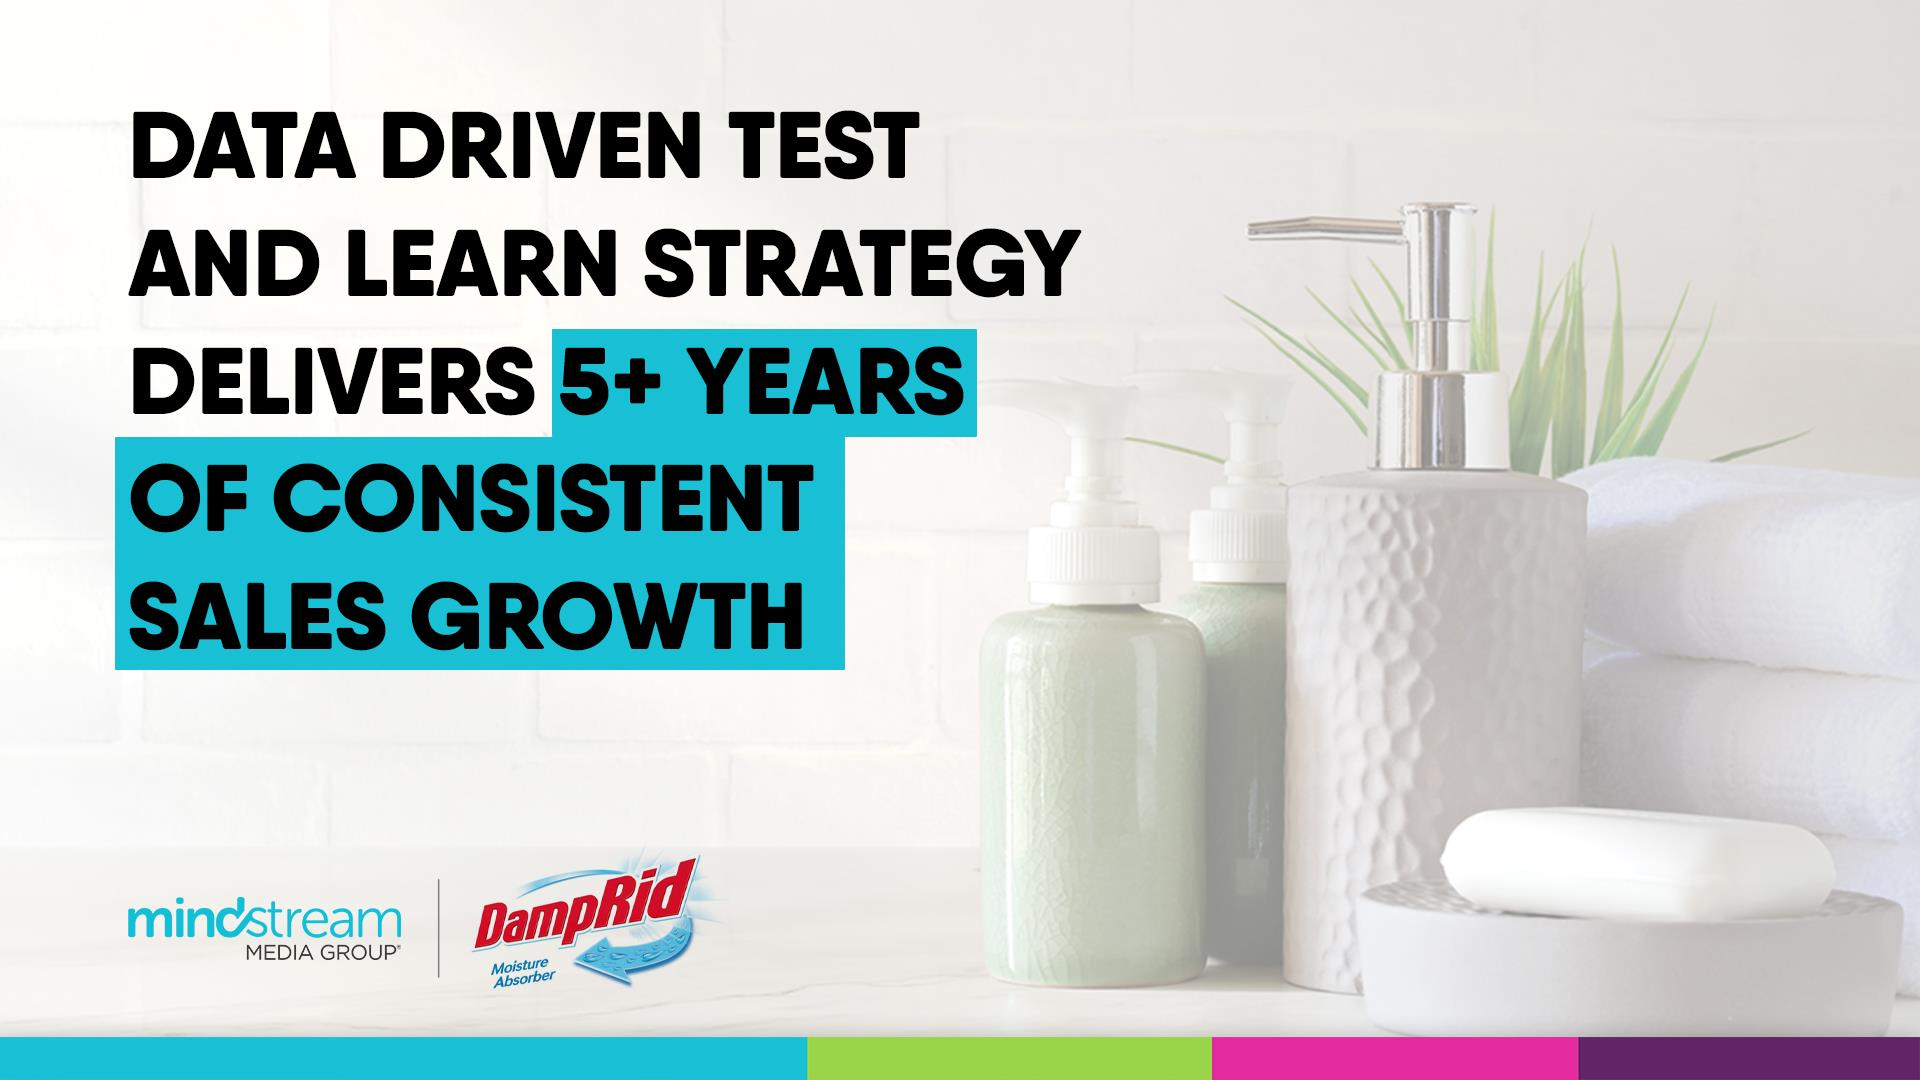 Data Driven Test & Learn Strategy Delivers 5+ Years of Consistent Sales Growth